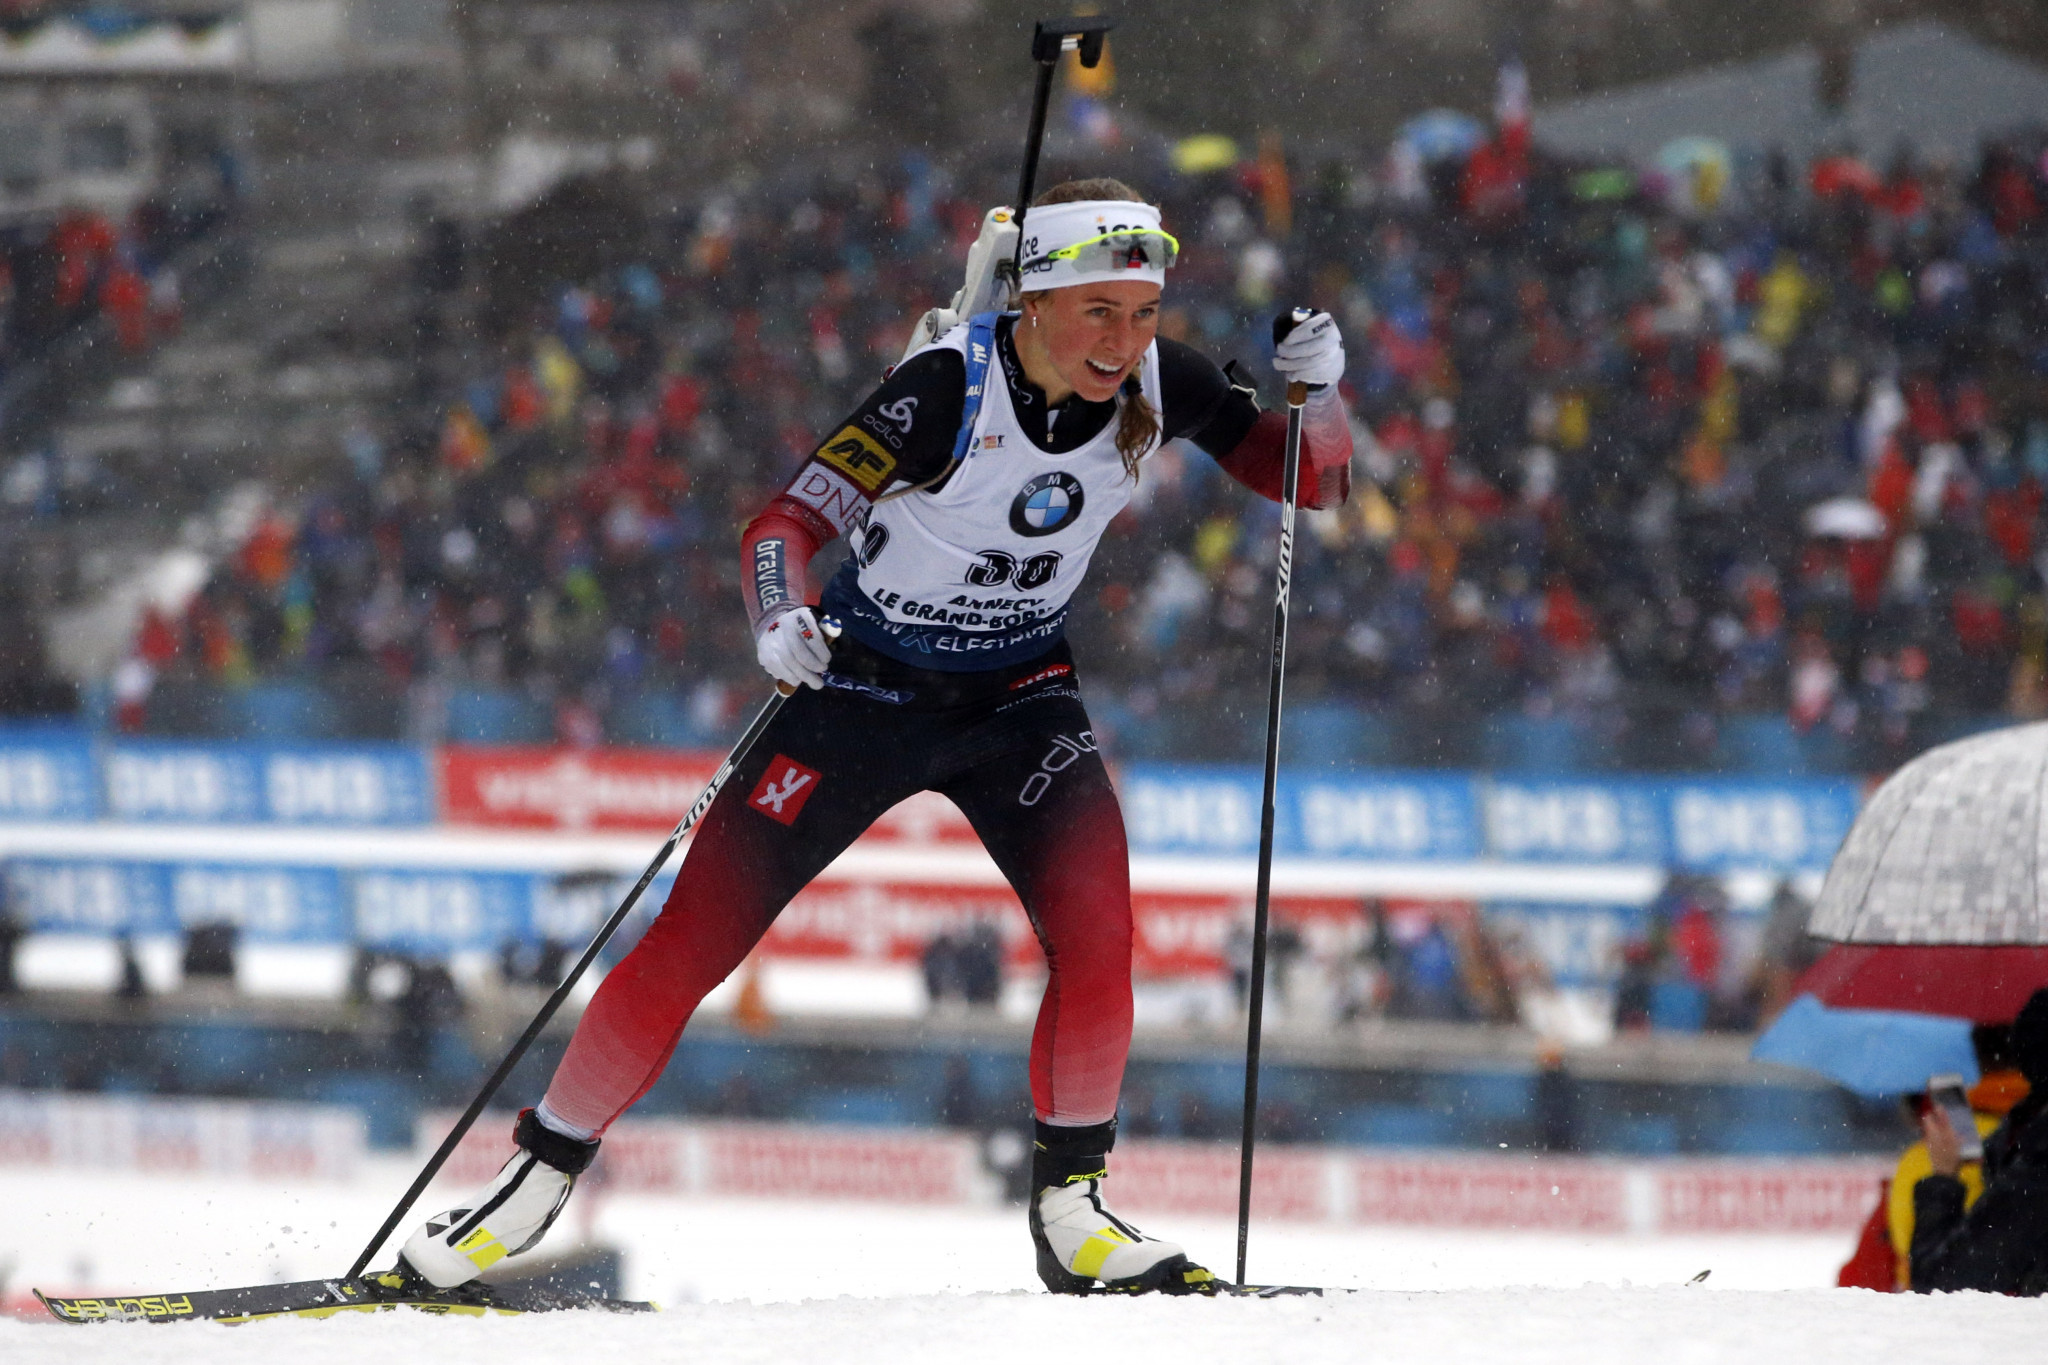 Former world champion Eckhoff wins sprint event at IBU World Cup